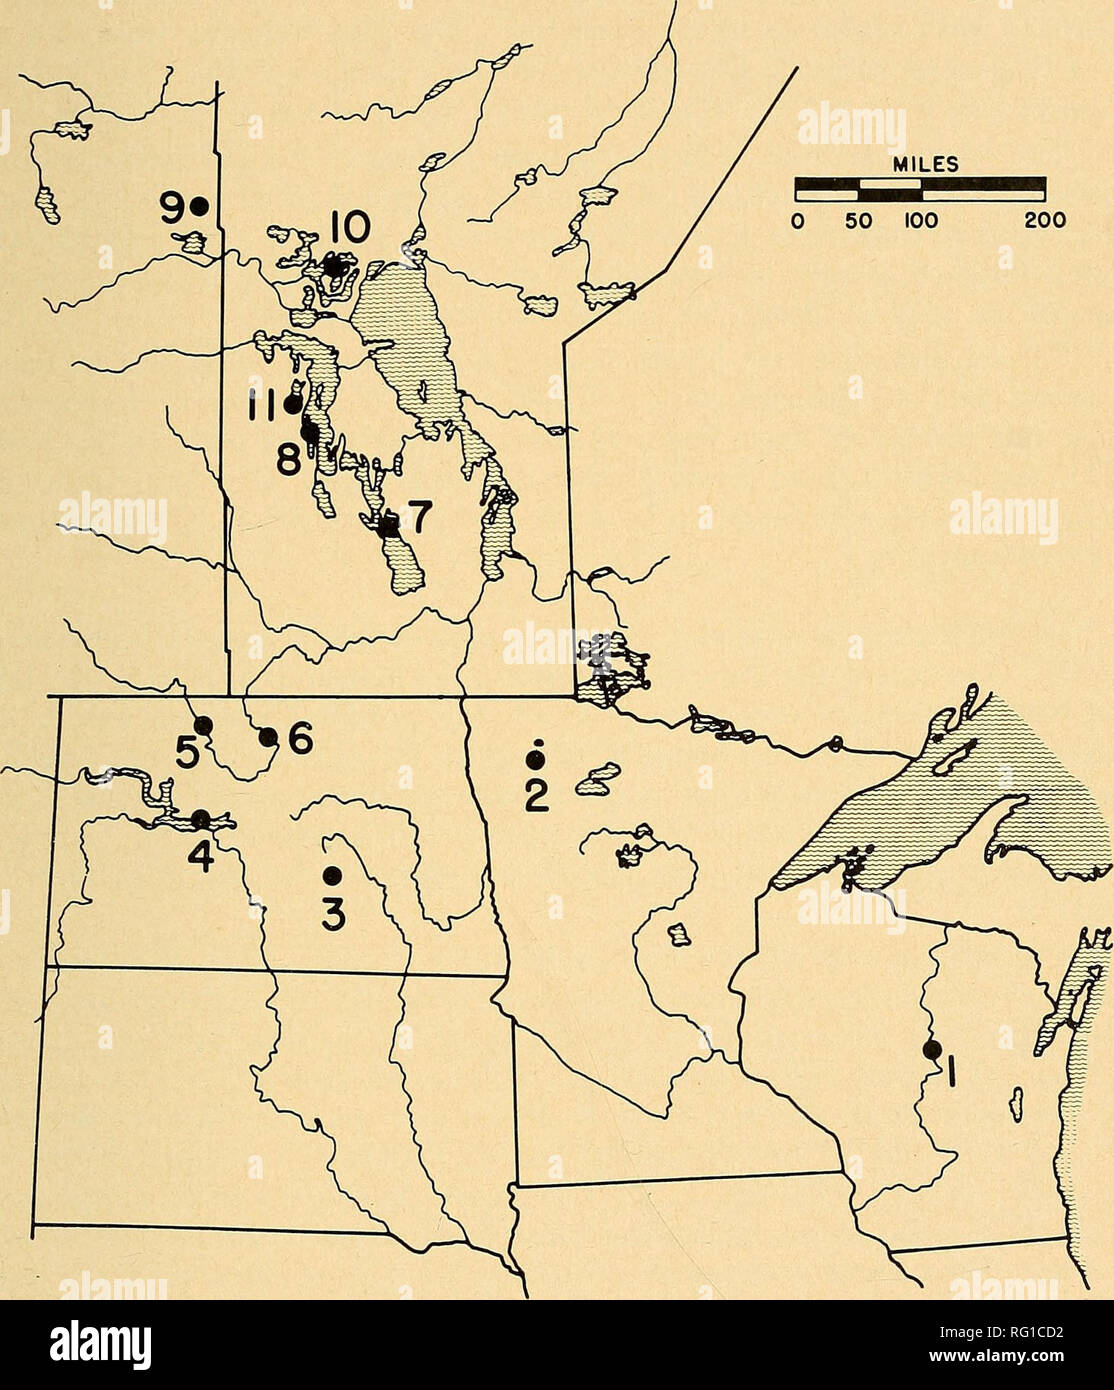 . The Canadian field-naturalist. 1969 Anderson et al.: Chlorinated Hydrocarbons in Birds 93. Figure 1. Map showing locations of pelican and cormorant breeding colonies used for pesticide studies in 1965. Locations are numbered as follows: 1. Lake DuBay, Wis.; 2. Agassiz National Wildlife Refuge (NWR), Minn.; 3. Chase Lake NWR, N.D.; 4. Lake Garrison, N.D.; 5. Upper Souris NWR, N.D.; 6. Salyer (formerly Lowter Souris) NWR, N.D.; 7. Dog Lake, Man.; 8. Lake Winnipegosis, Man.; 9. Suggi Lake, Sask.; 10. Moose Lake, Man.; 11. Pelican Lake, Man. Nesting pelicans were sampled at Chase Lake, Dog Lake, - Stock Image